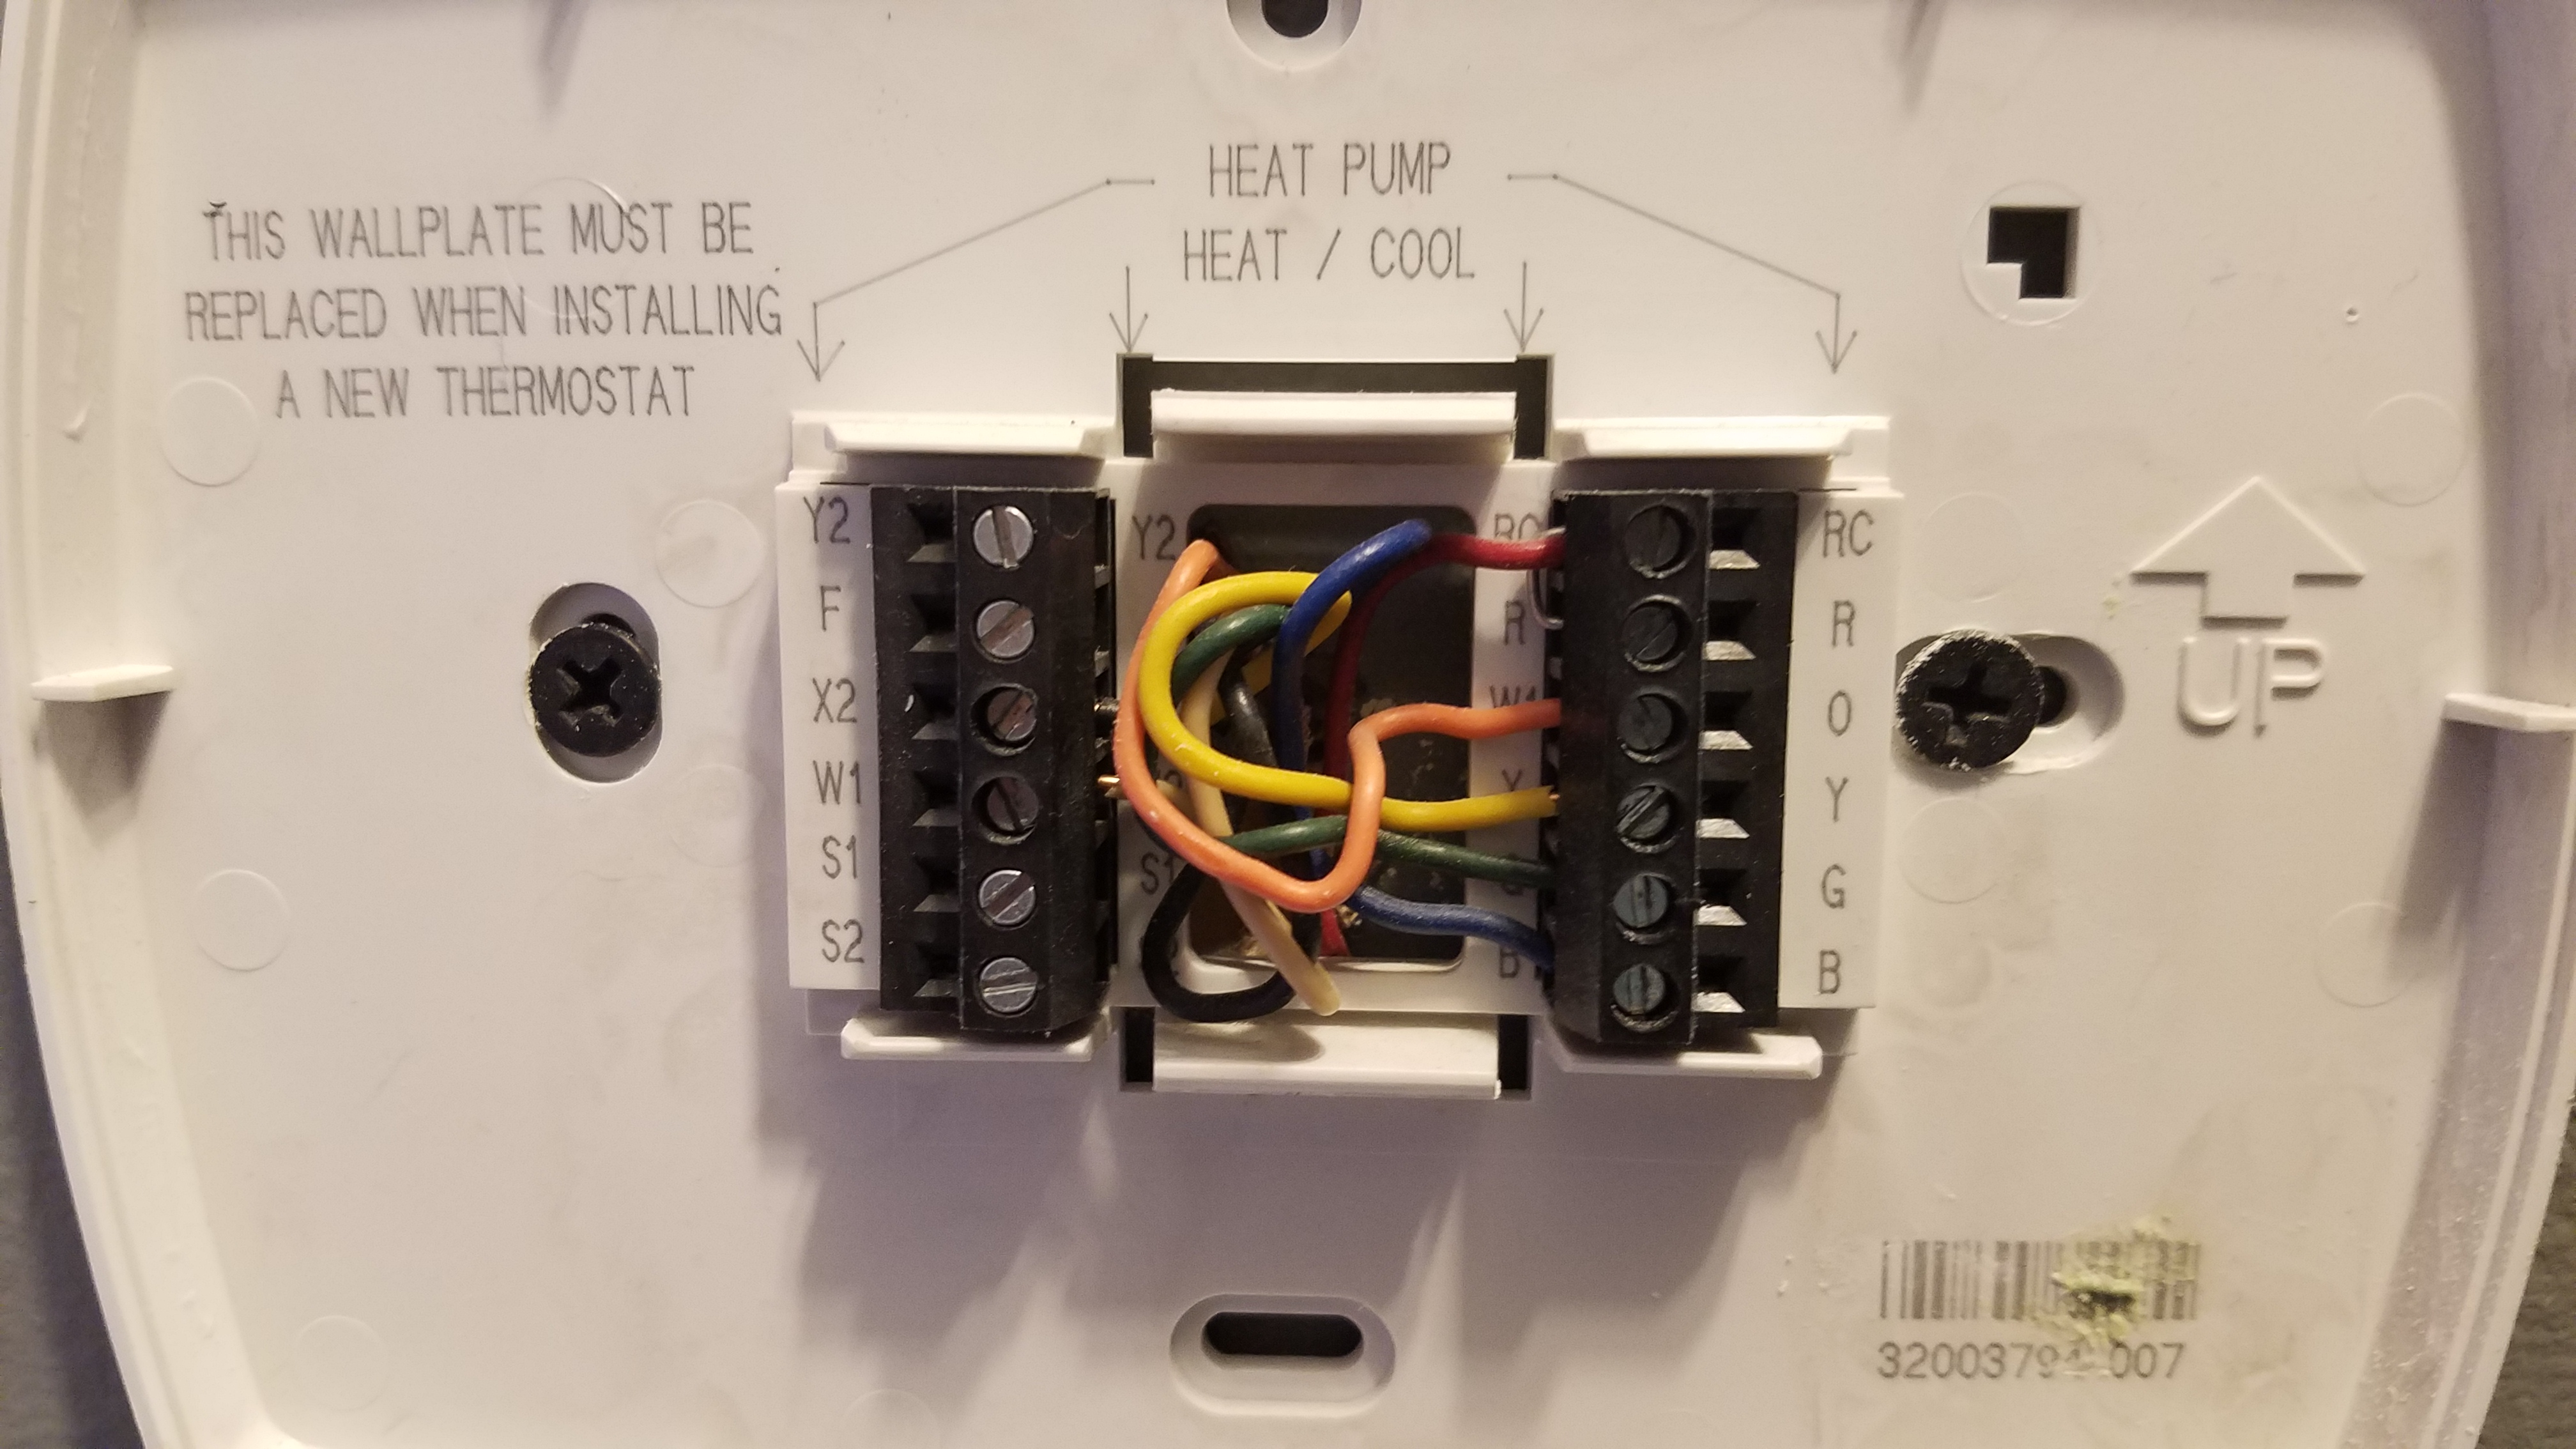 small resolution of nest thermostat and heat pumps w aux chris tierney rh christierney com goodman heat pump thermostat wiring diagram goodman air handler wiring diagrams